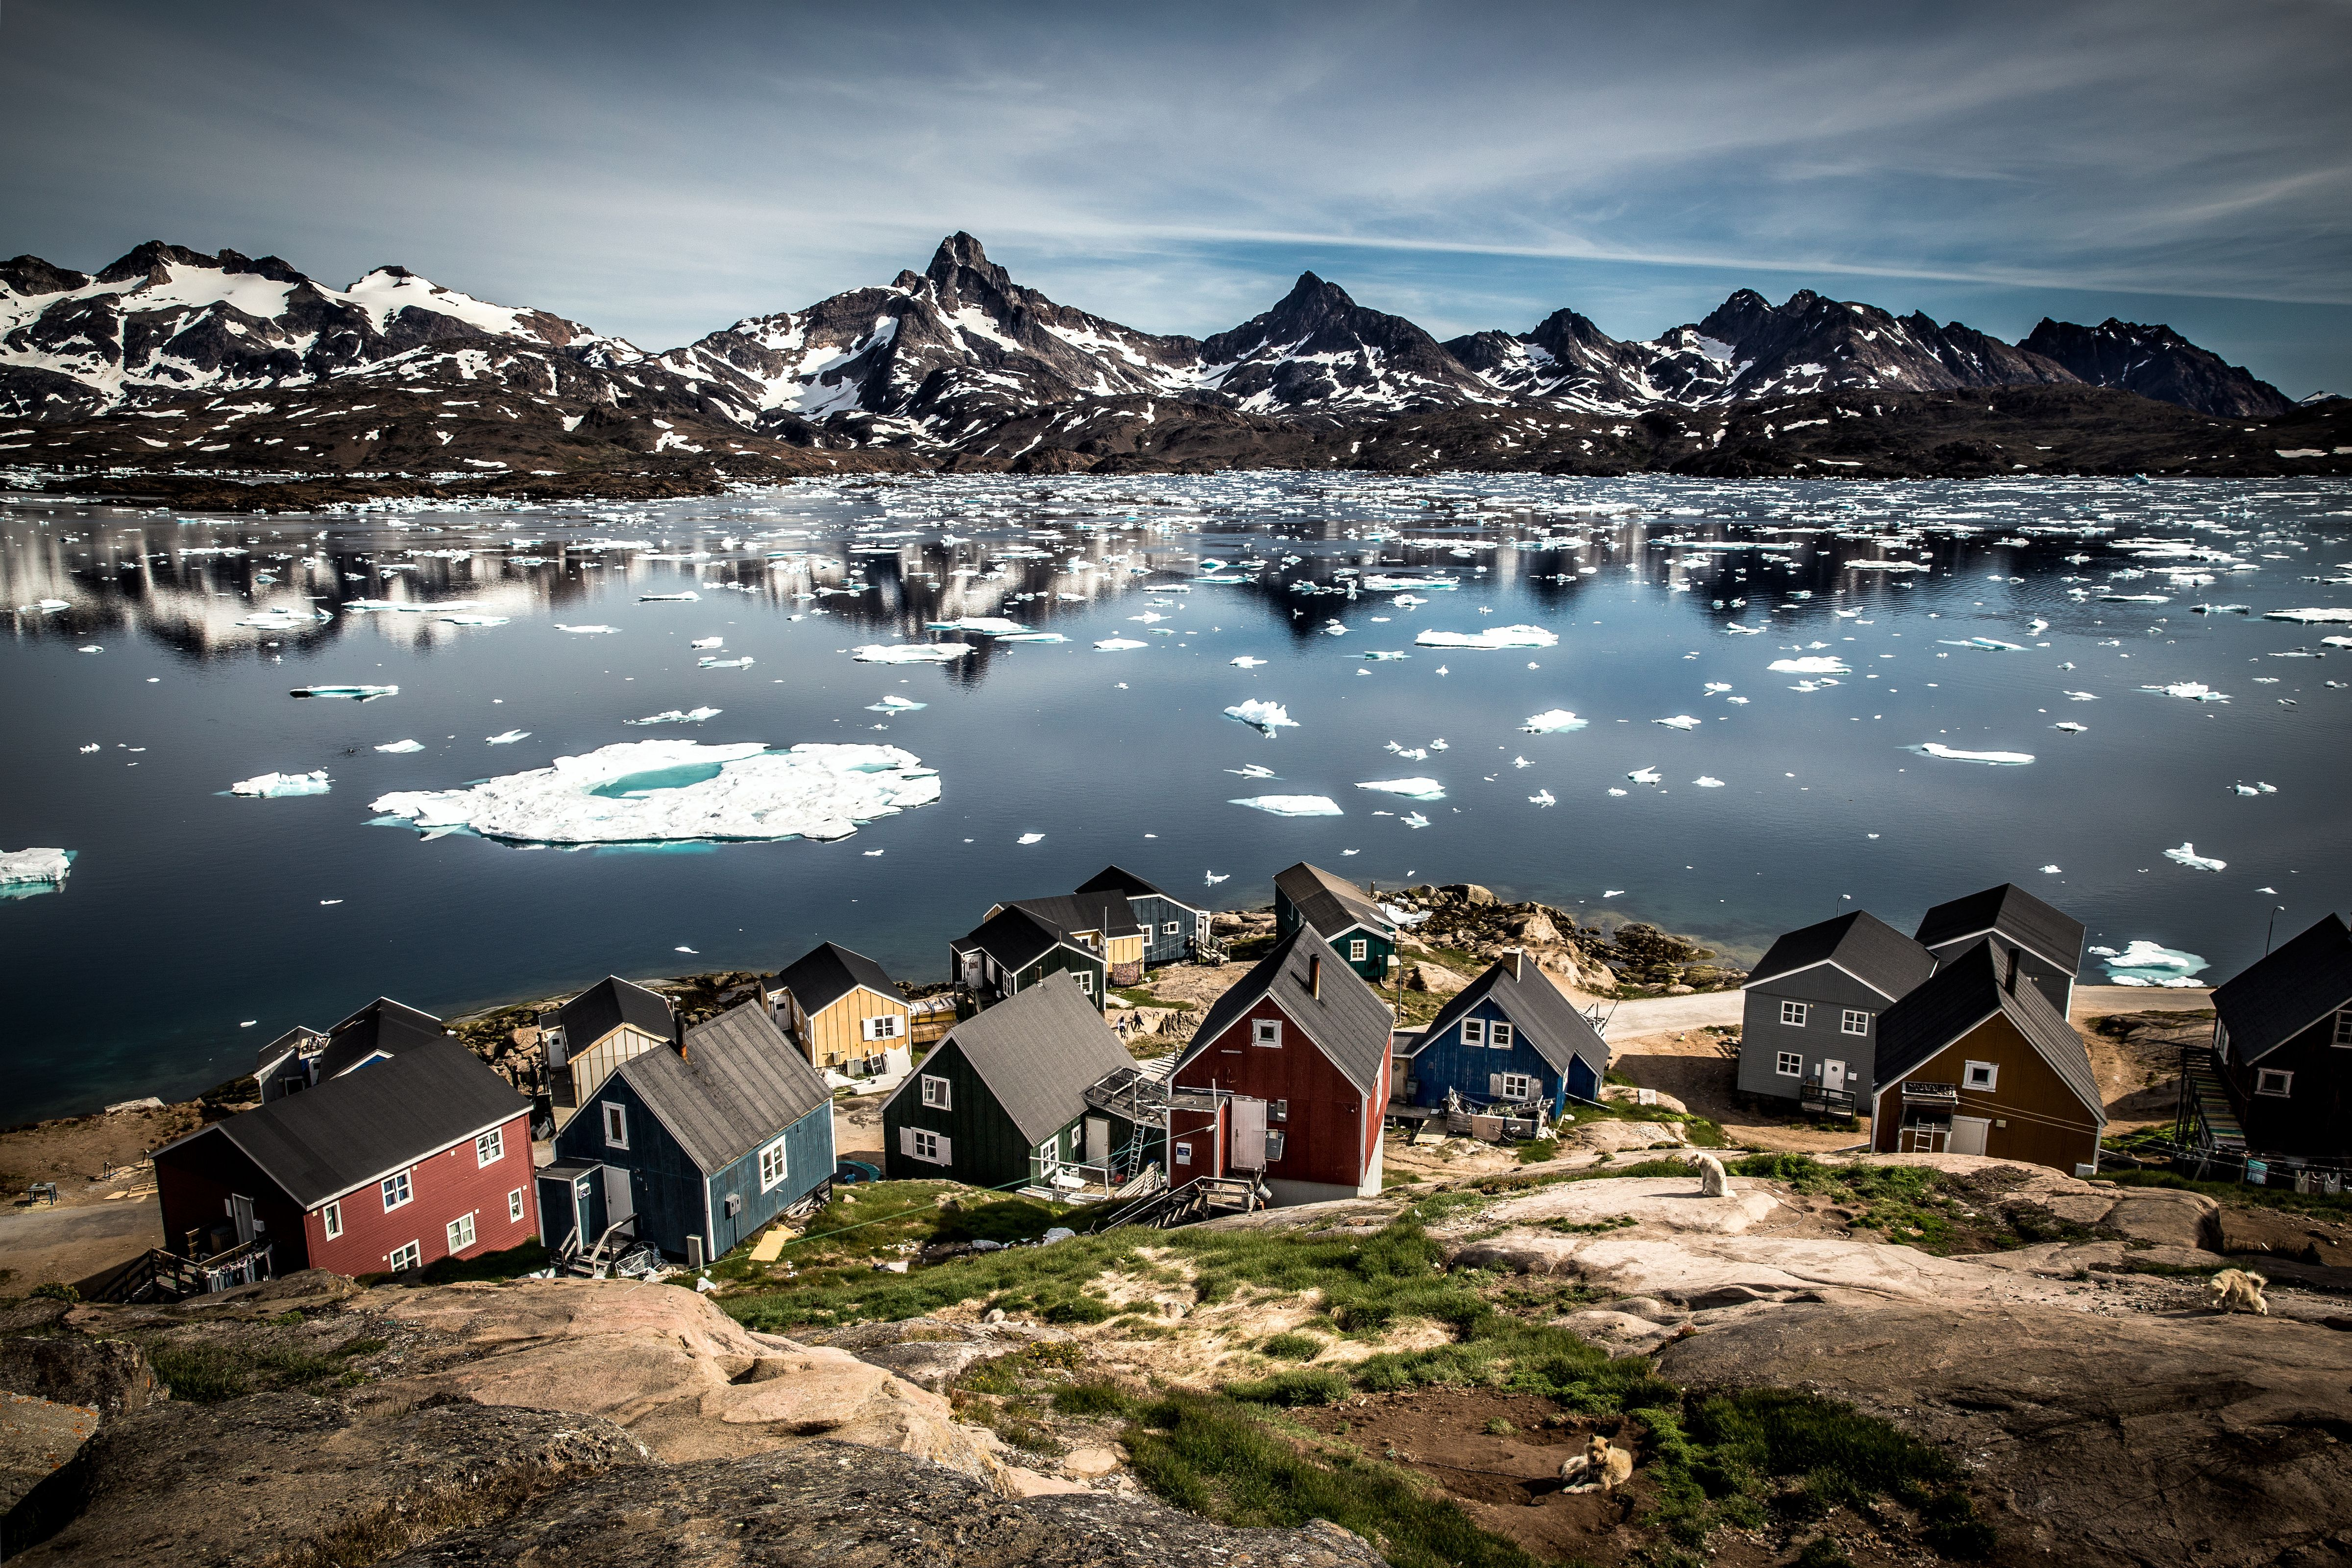 Crediting is required when using photos from our galleries. This means you have credit both the photographer and Visit Greenland.  Photo by Mads Pihl - Visit Greenland  This photo is licensed under Visit Greenland A/S' Limited Commercial license.  Please refer to the license agreement for more info about the rights of use associated with the image.  Download the agreement here:  https://goo.gl/uAx1DK  When downloading or sharing this image you enter into an agreement with Visit Greenland A/S about the use of the image under this license.  If you want to apply for extended user rights for downloads on this database please read this article and follow the guidelines: http://goo.gl/RsJtBR